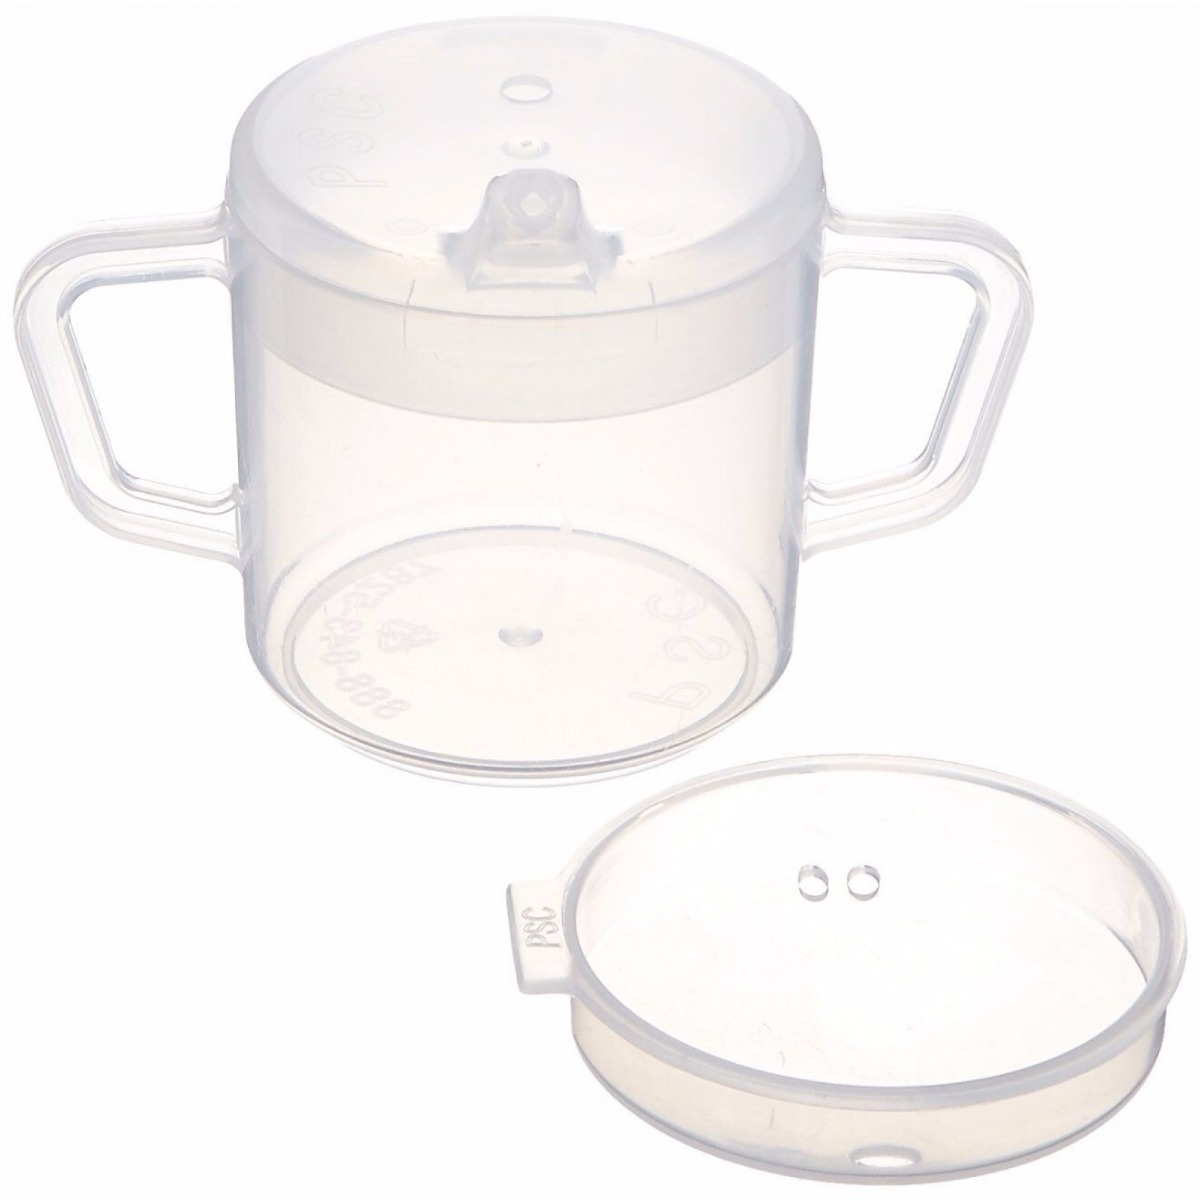 cups with two handles